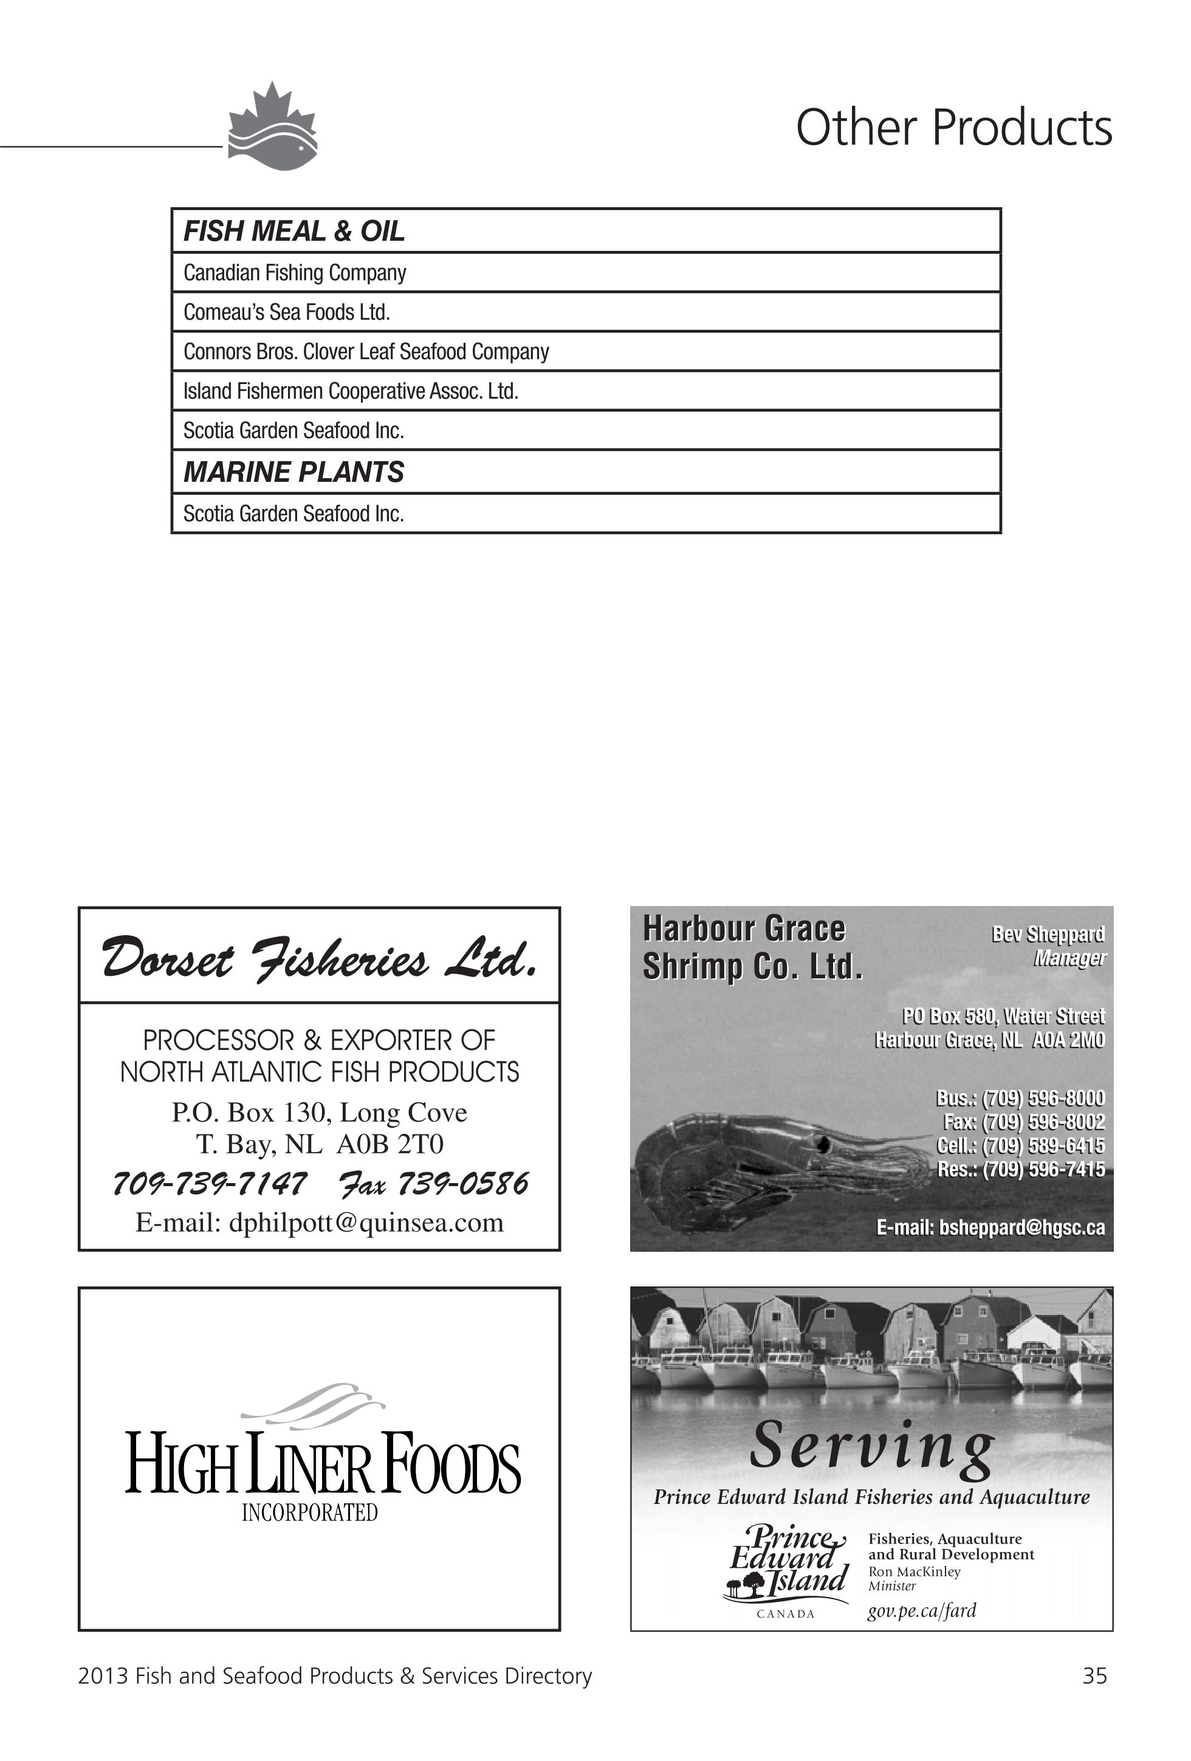 2013 Fish and Seafood Products & Services Directory